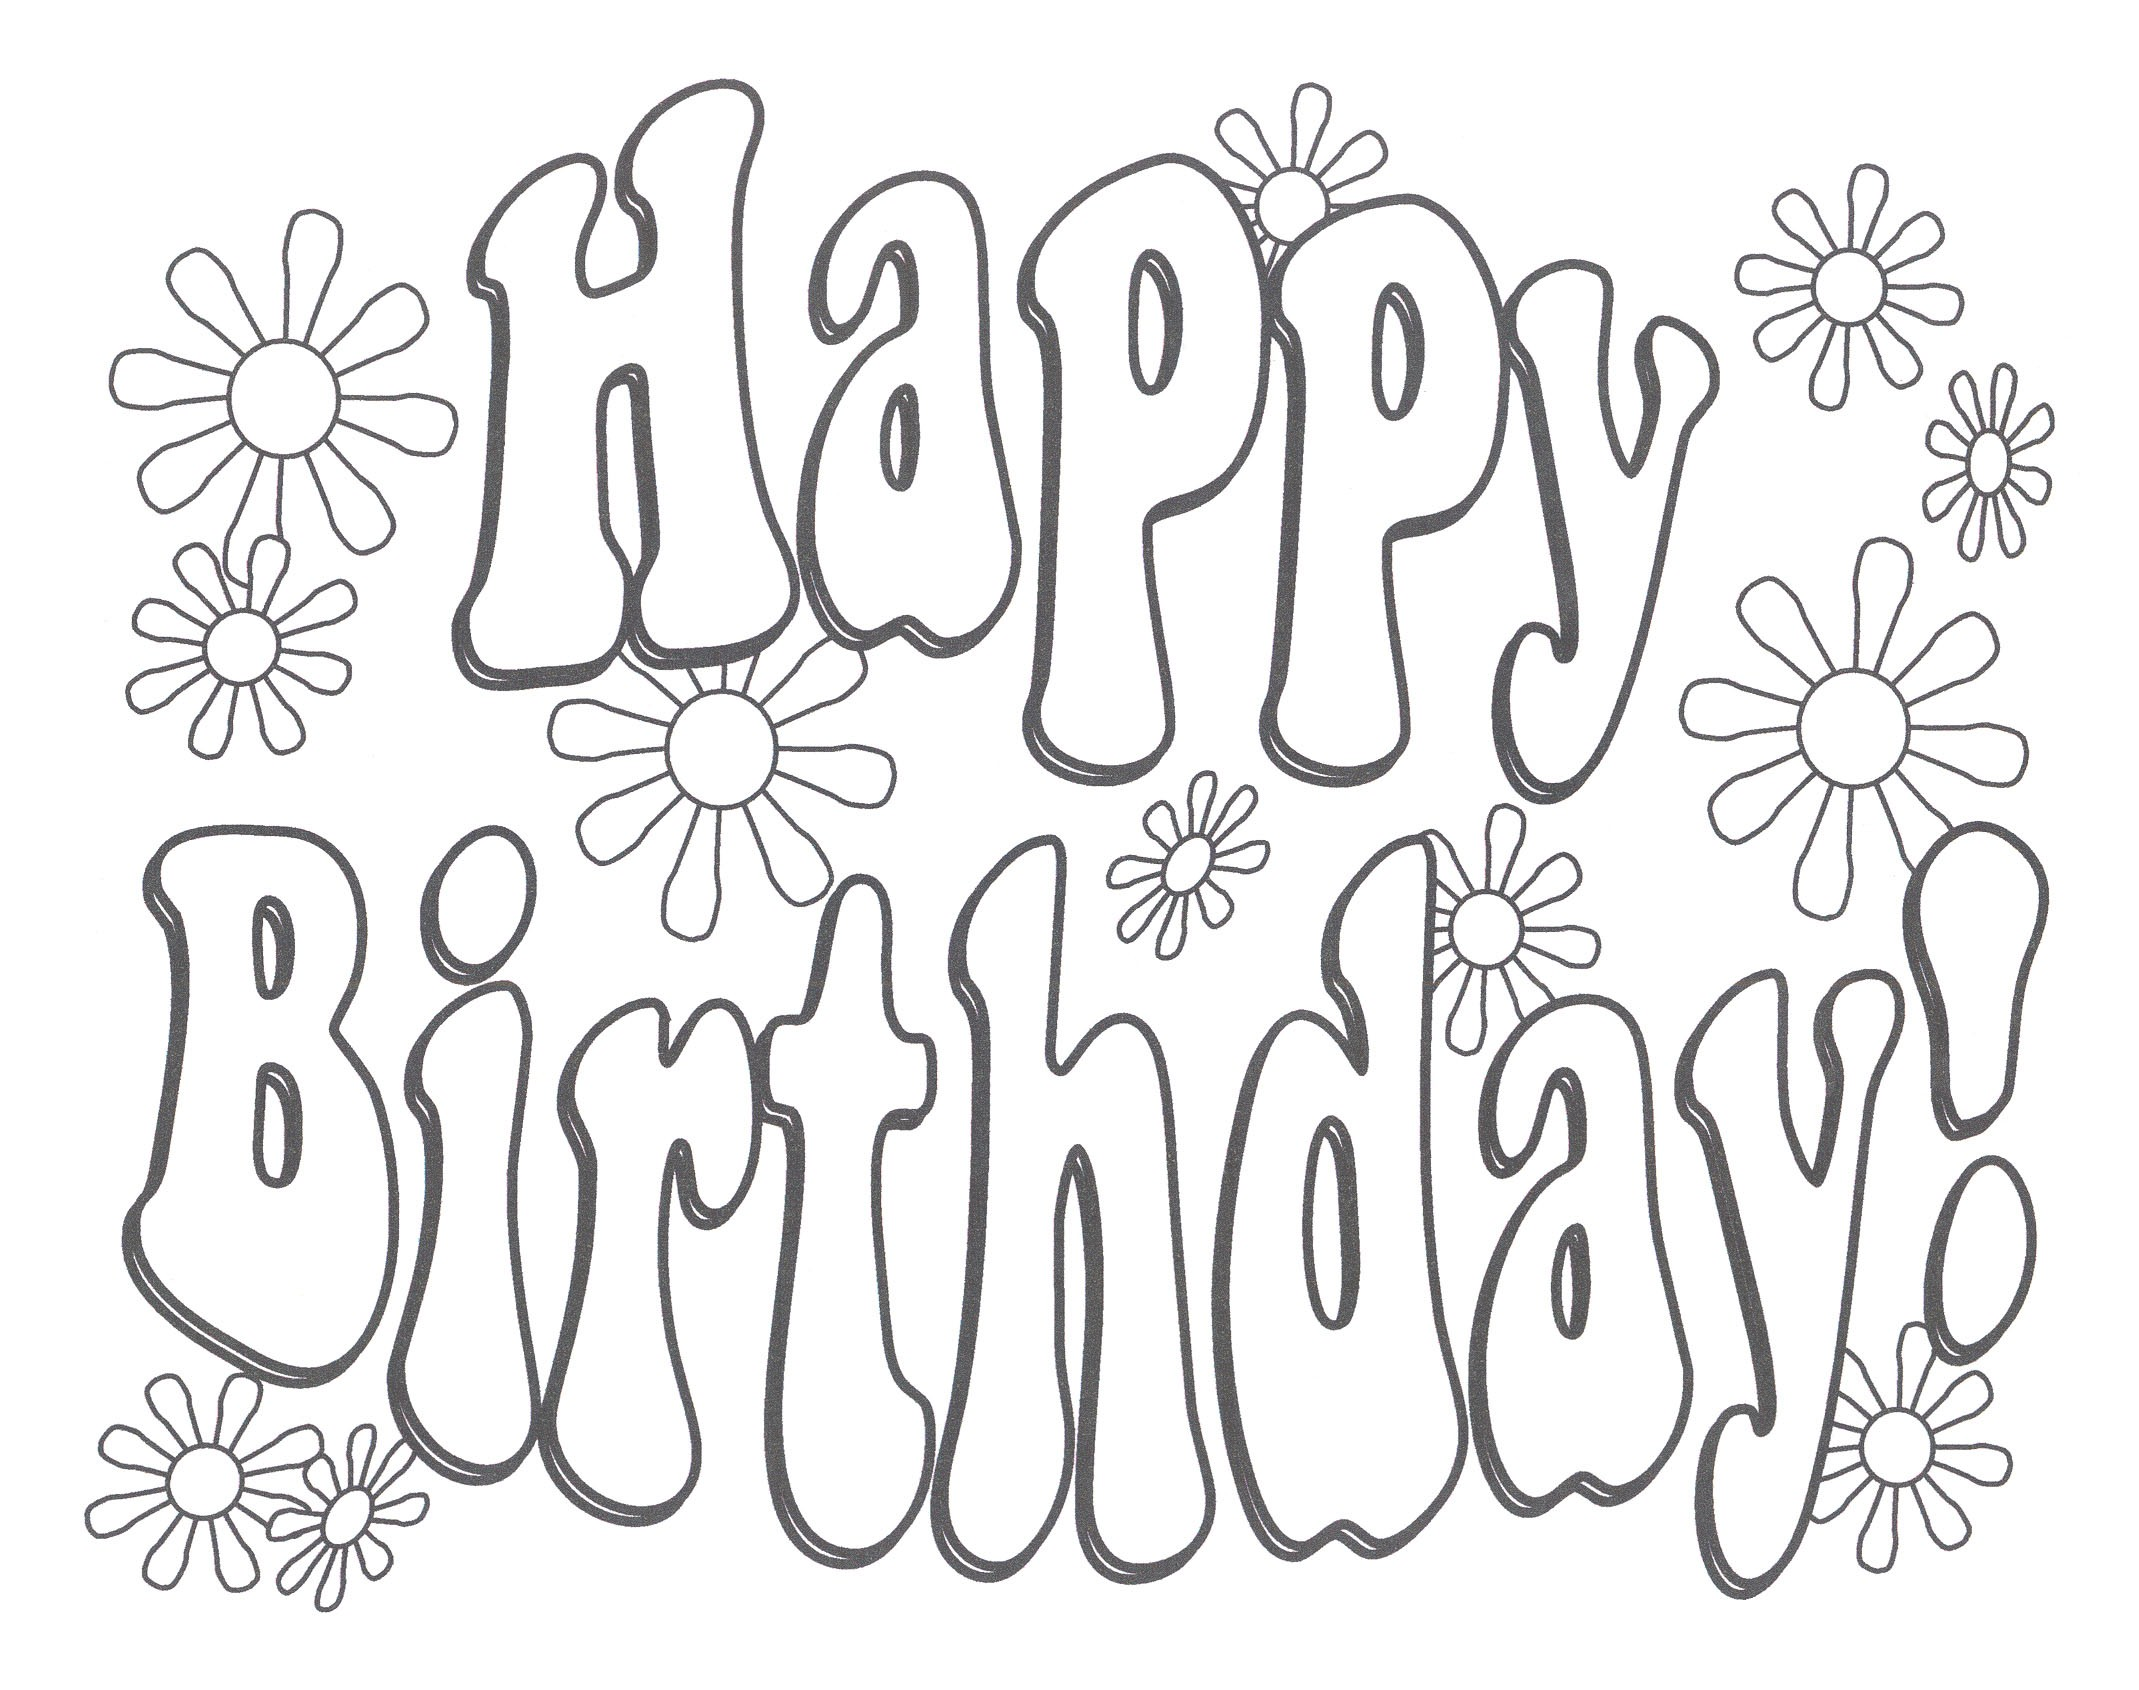 happy birthday pictures to color and print ; complete-happy-birthday-coloring-page-pages-for-kids-elegant-nice-design